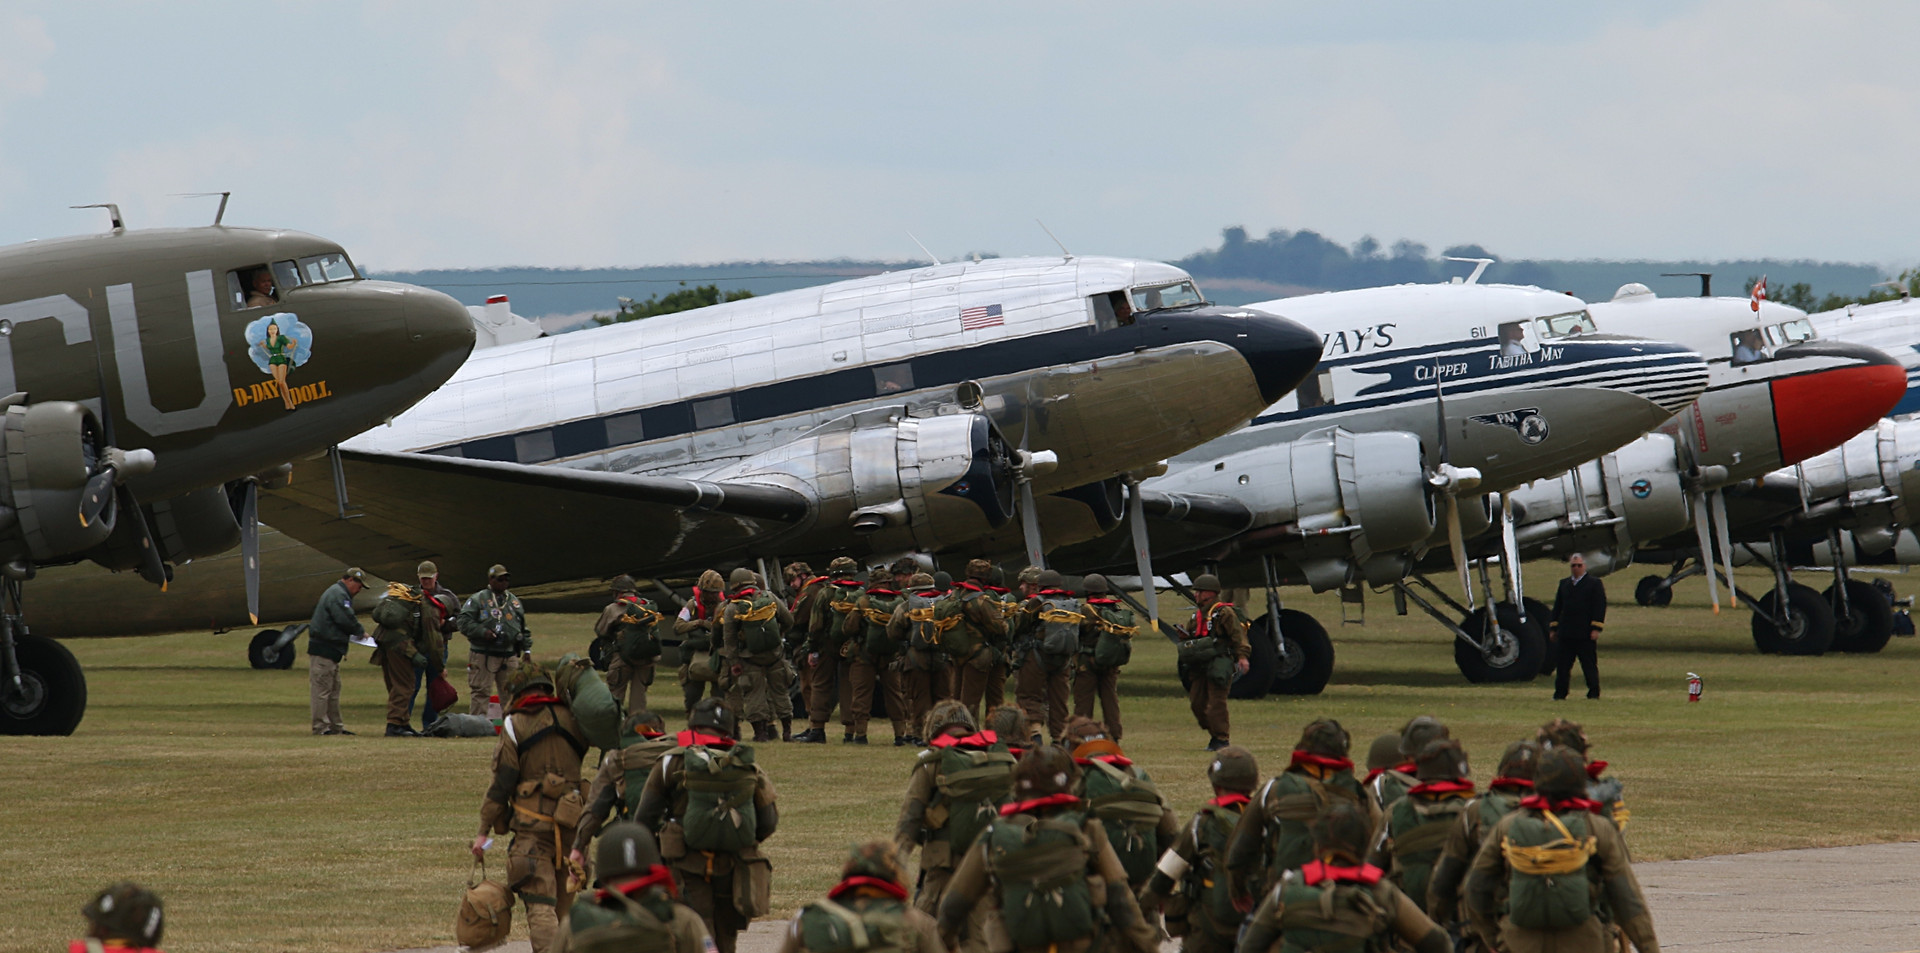 Troop loading Daks over Duxford June 201